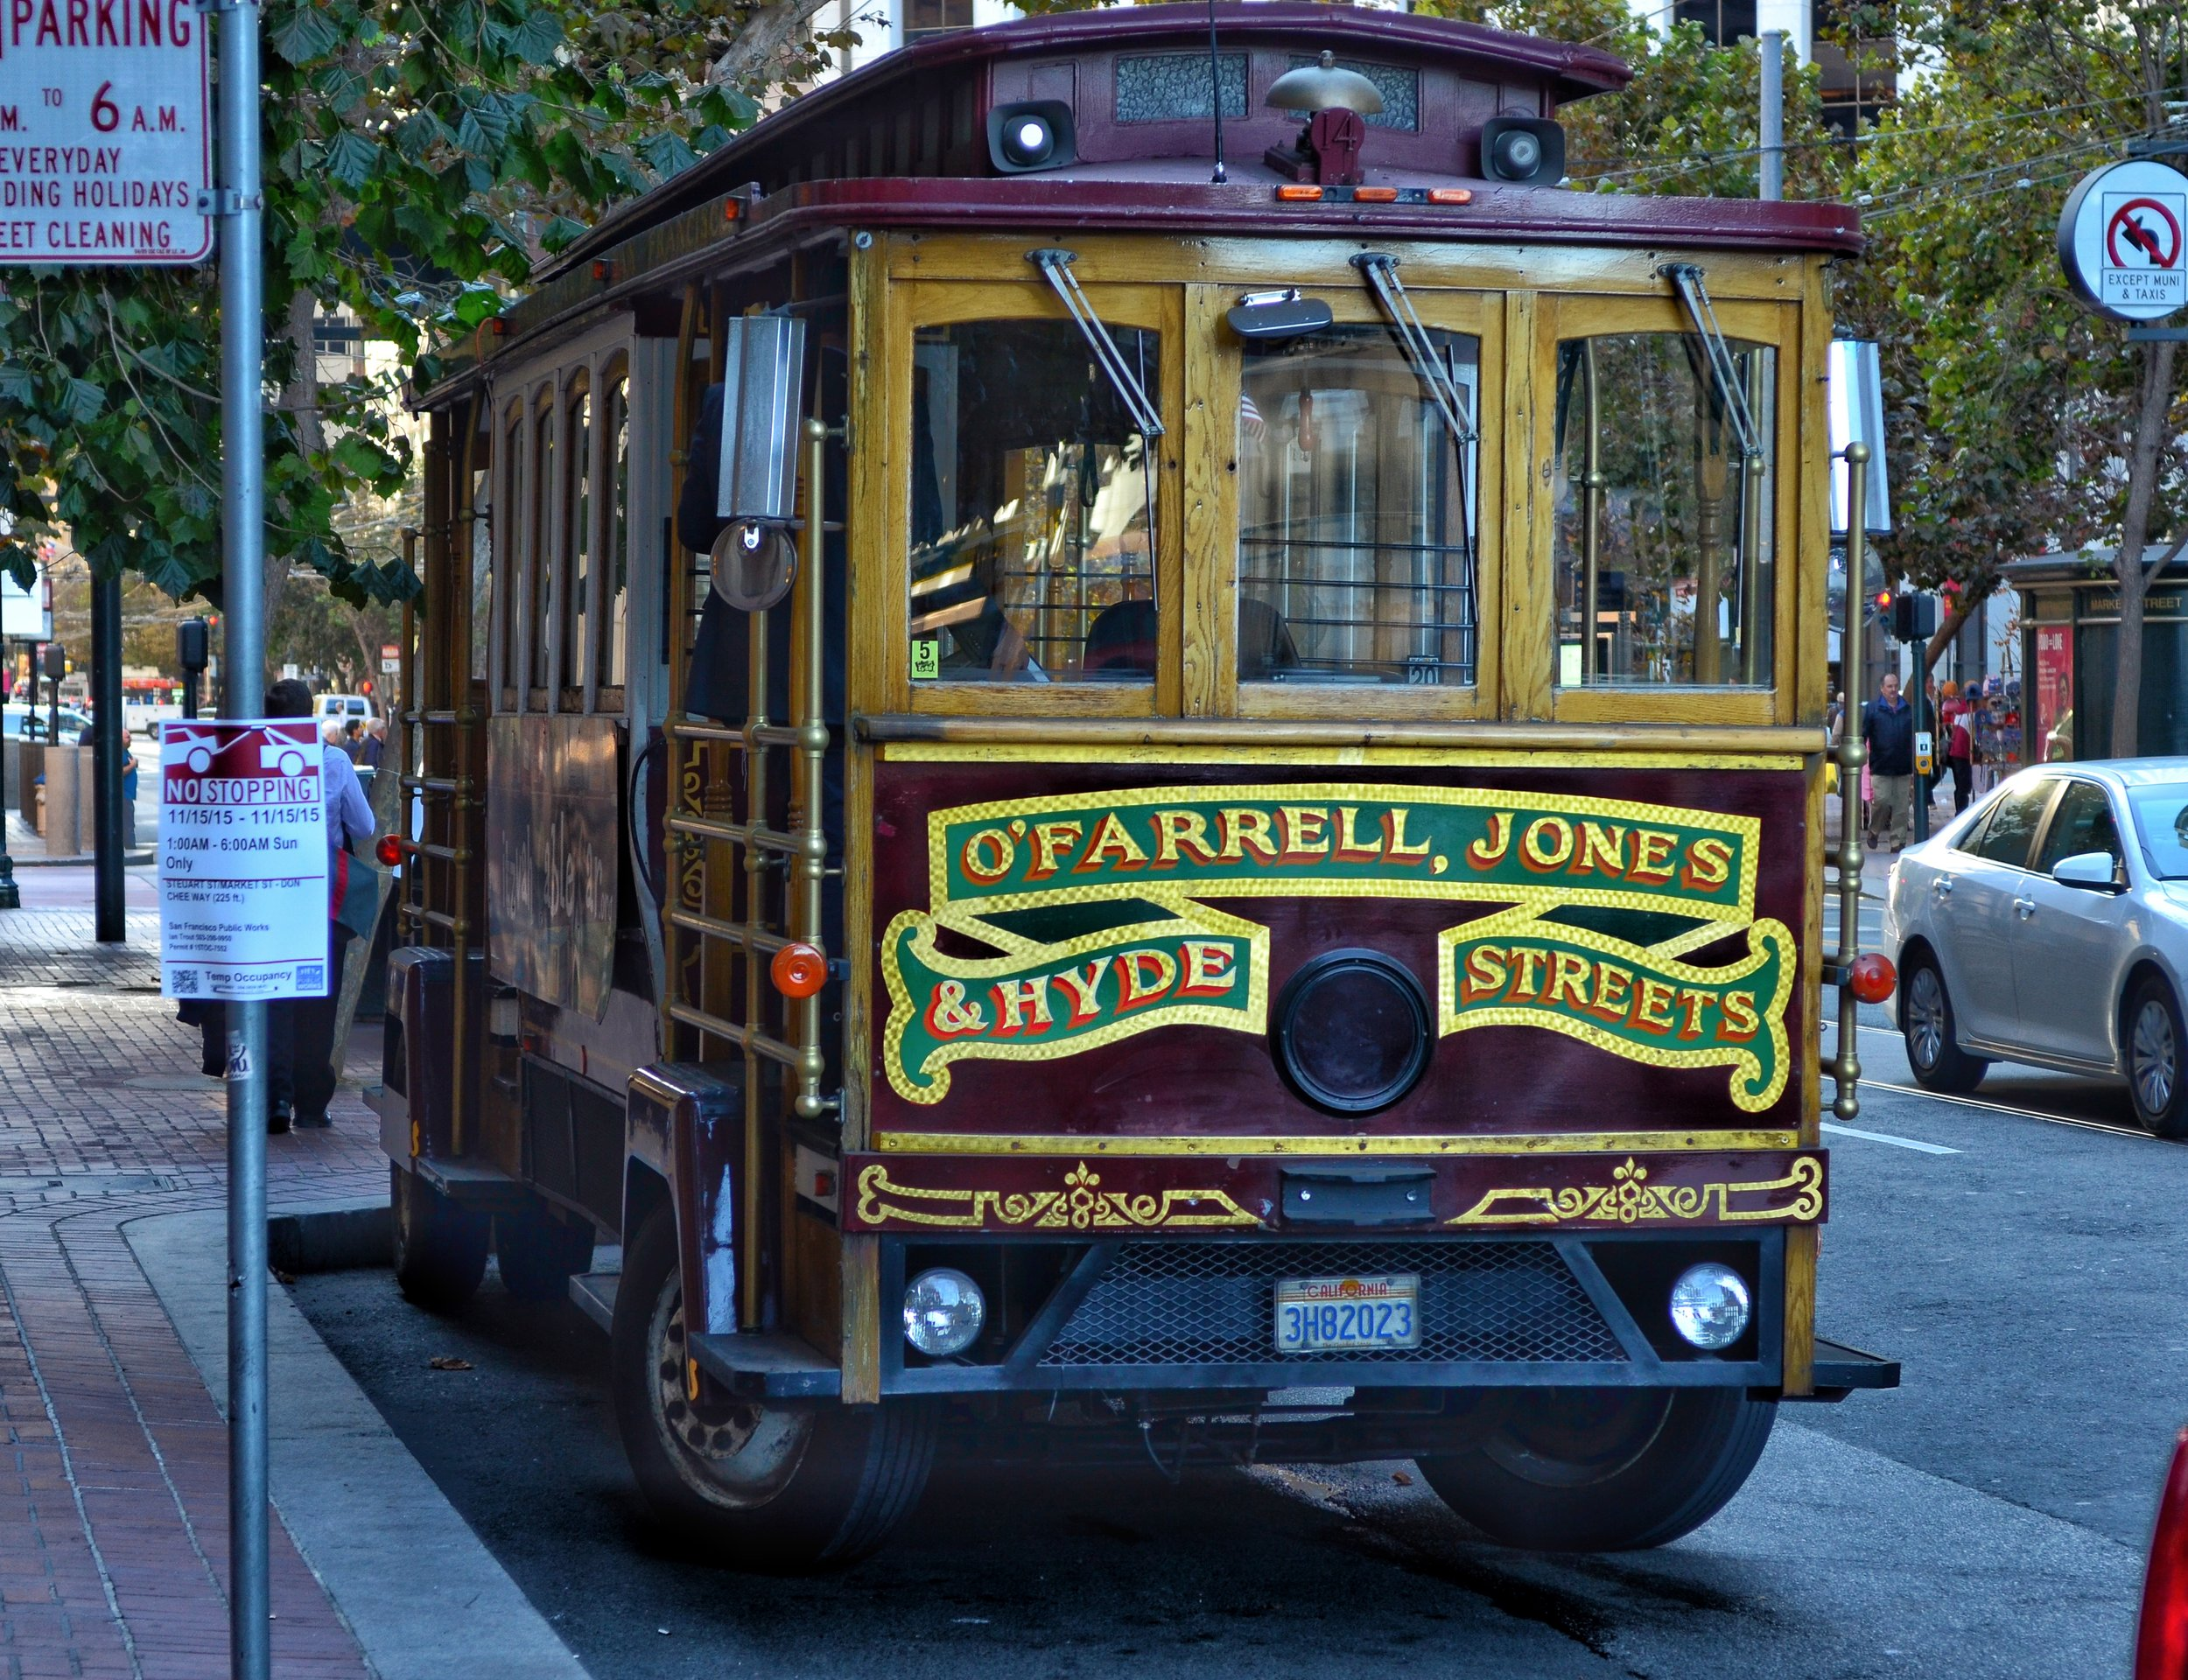 Old fashioned Trolley Car parked on Market street,